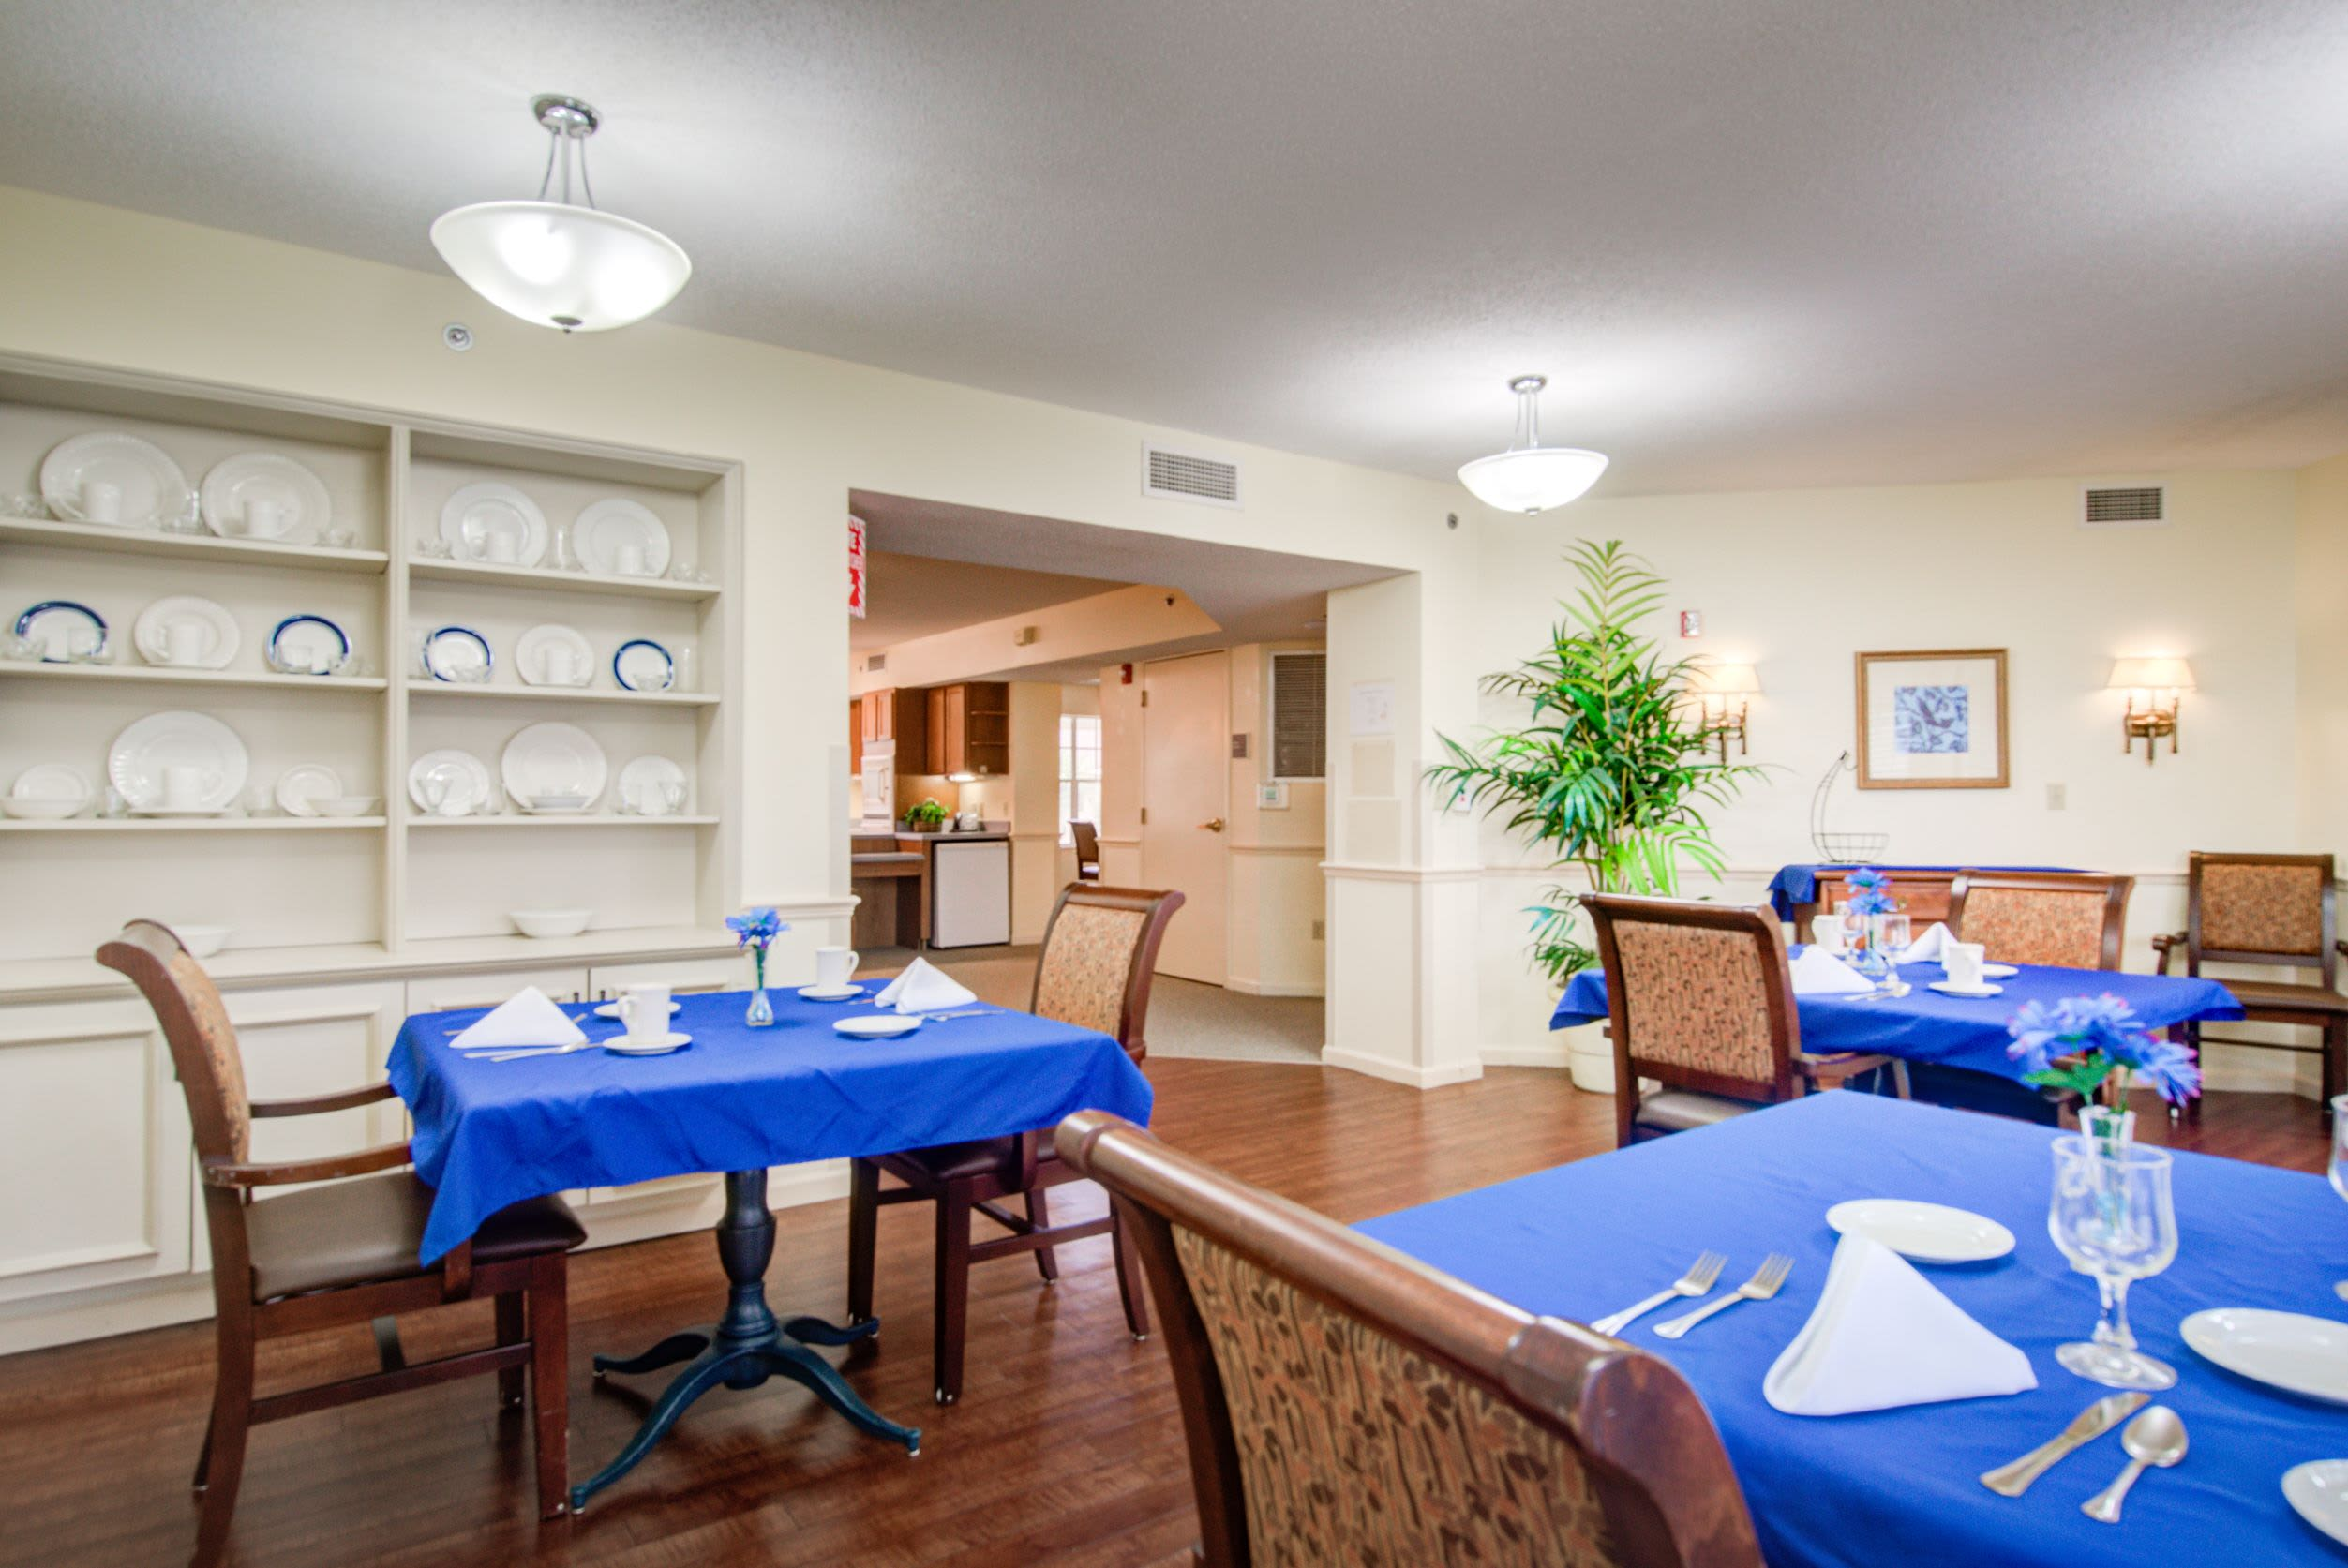 Dining tables with place settings at Truewood by Merrill, Charlotte Center in Port Charlotte, Florida.